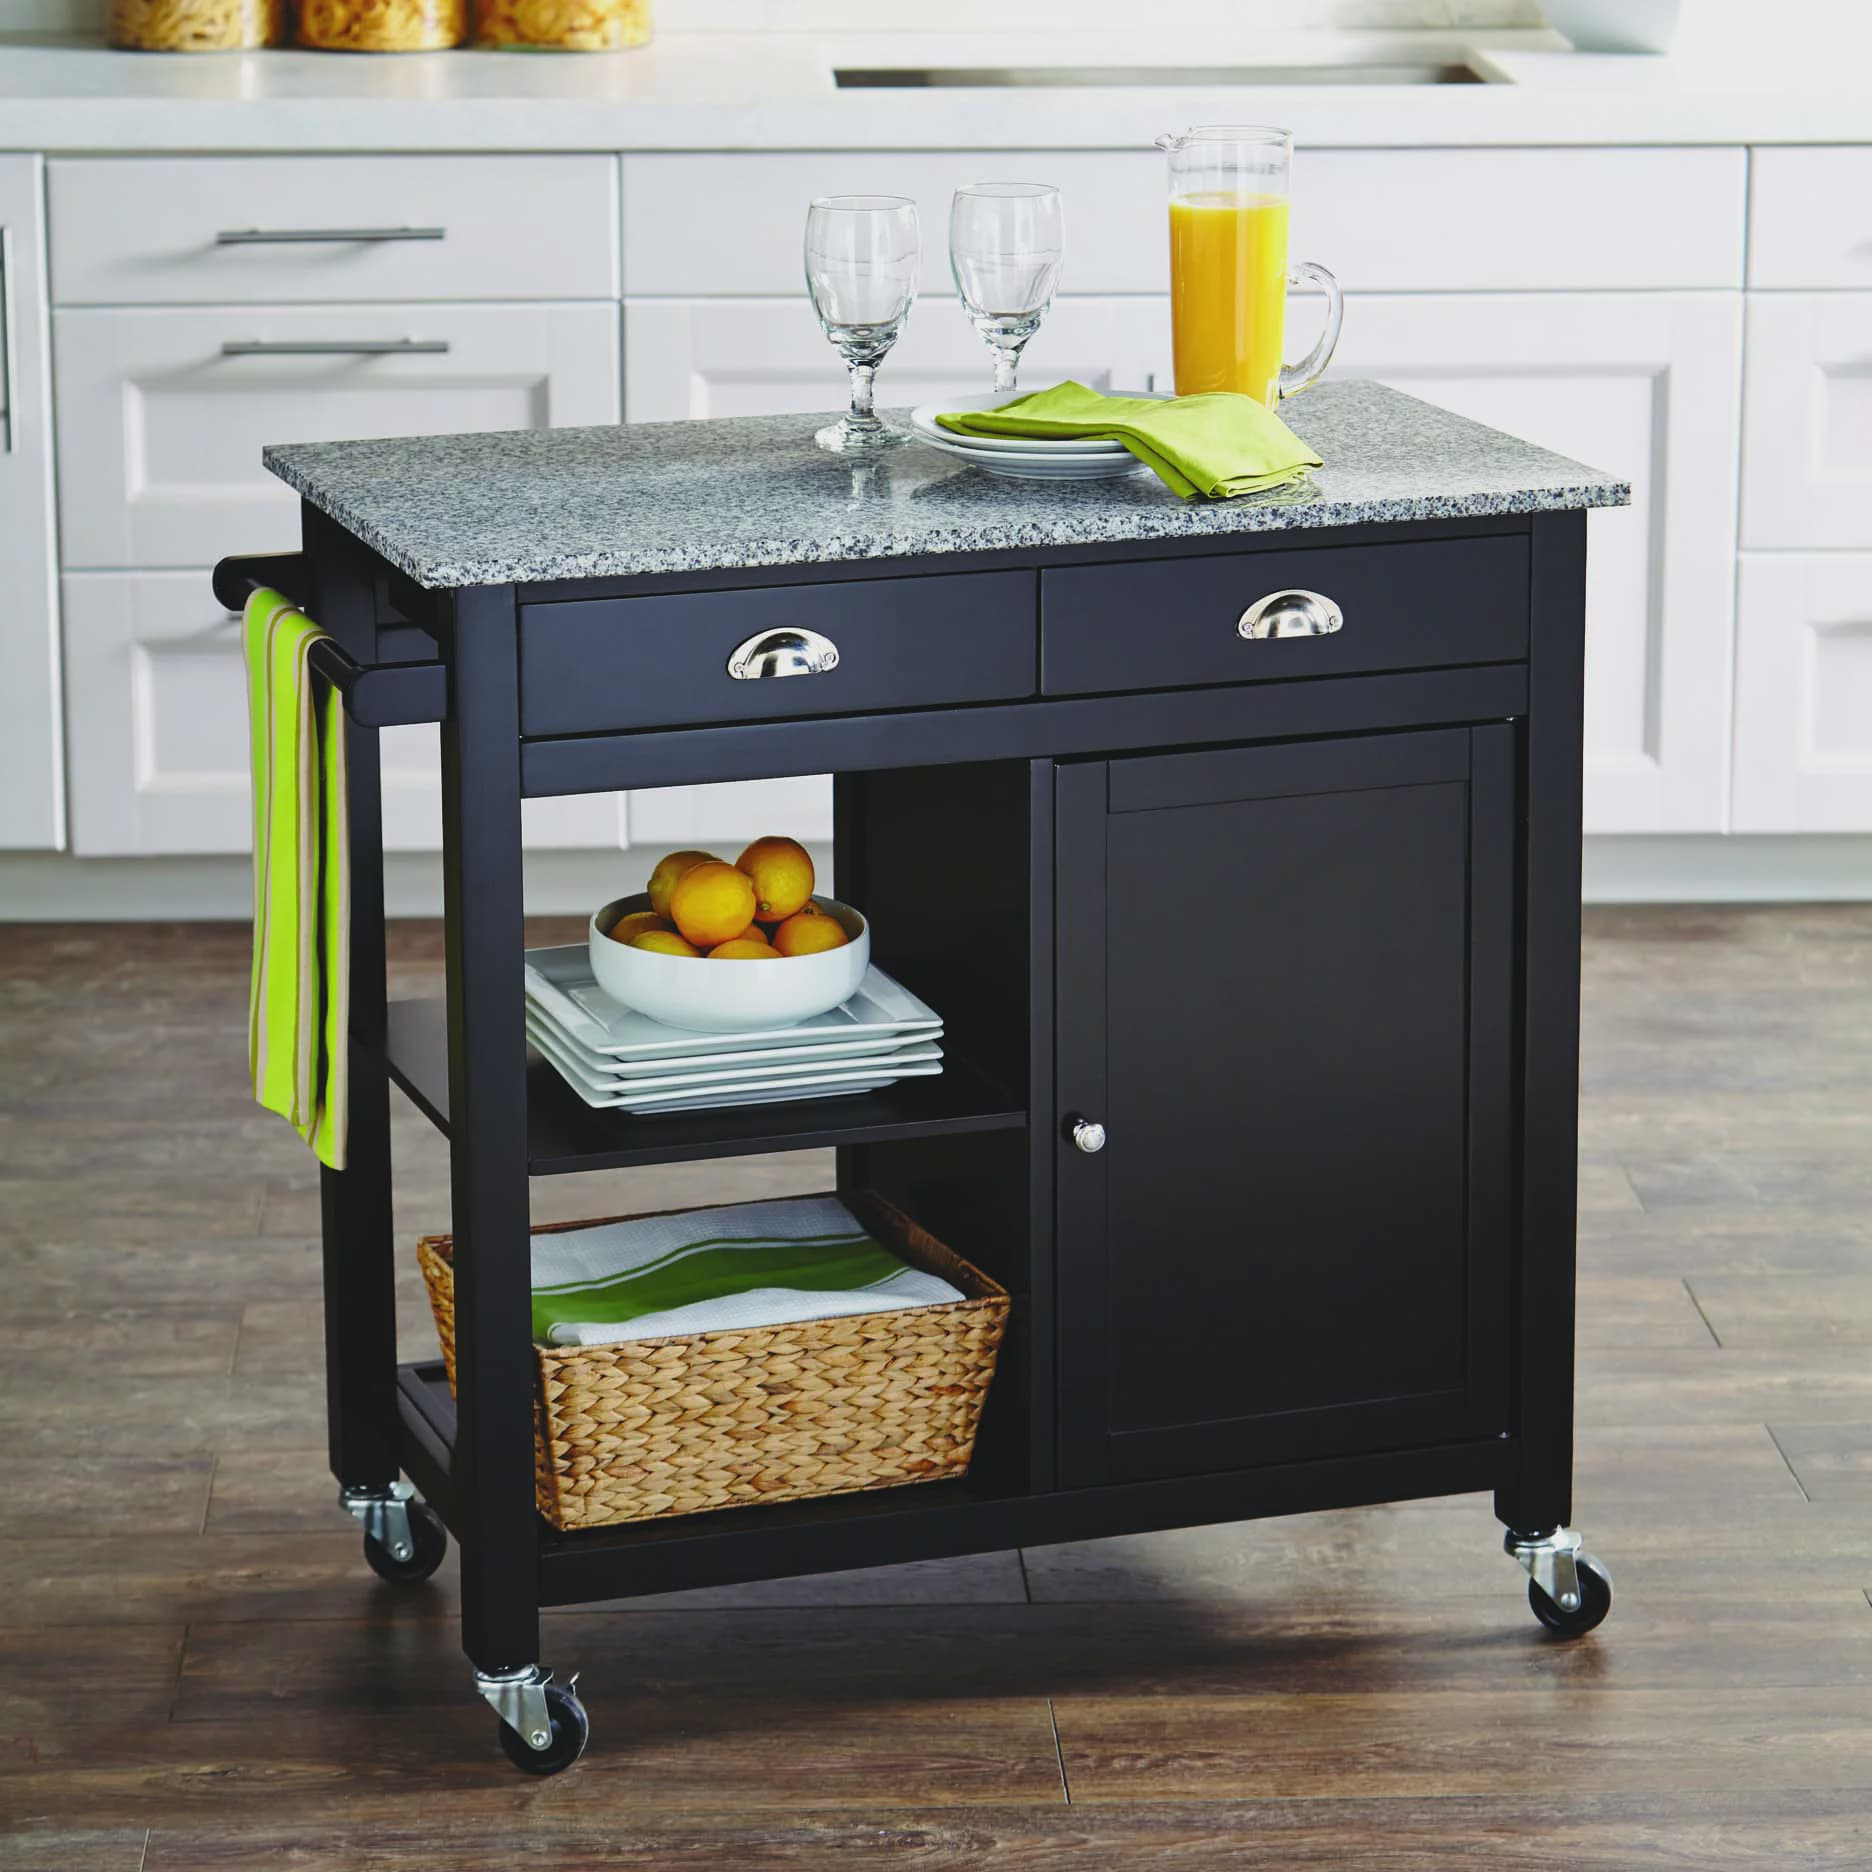 Better Homes and Gardens Kitchen Cart, Black Granite by Sauder Woodworking